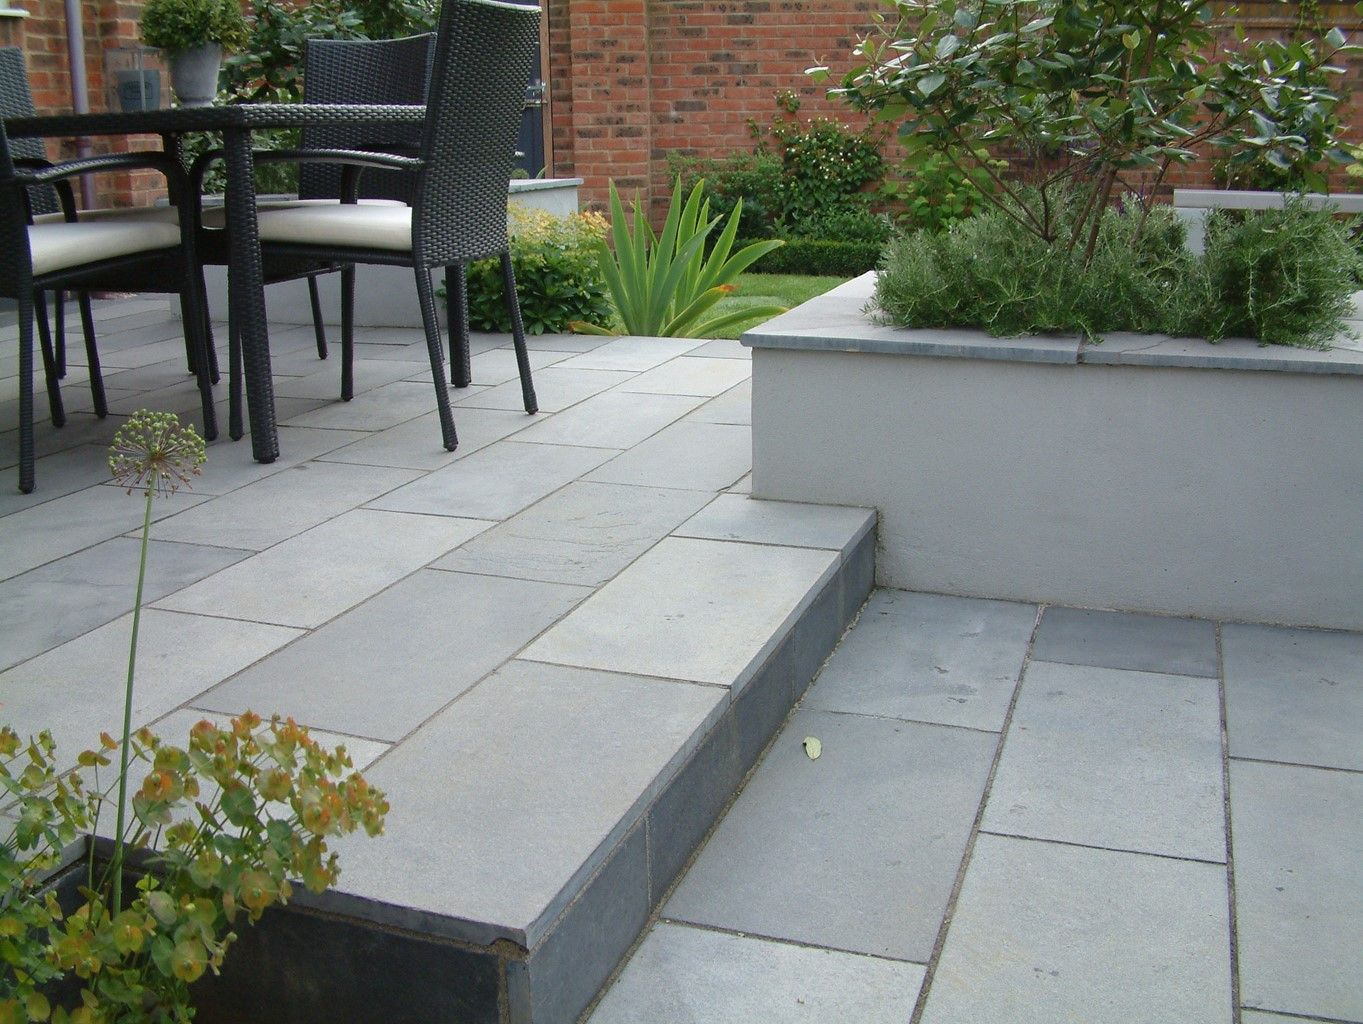 Garden Design And Build : Our Portfolio Features A Wide Range Of Projects,  Large And